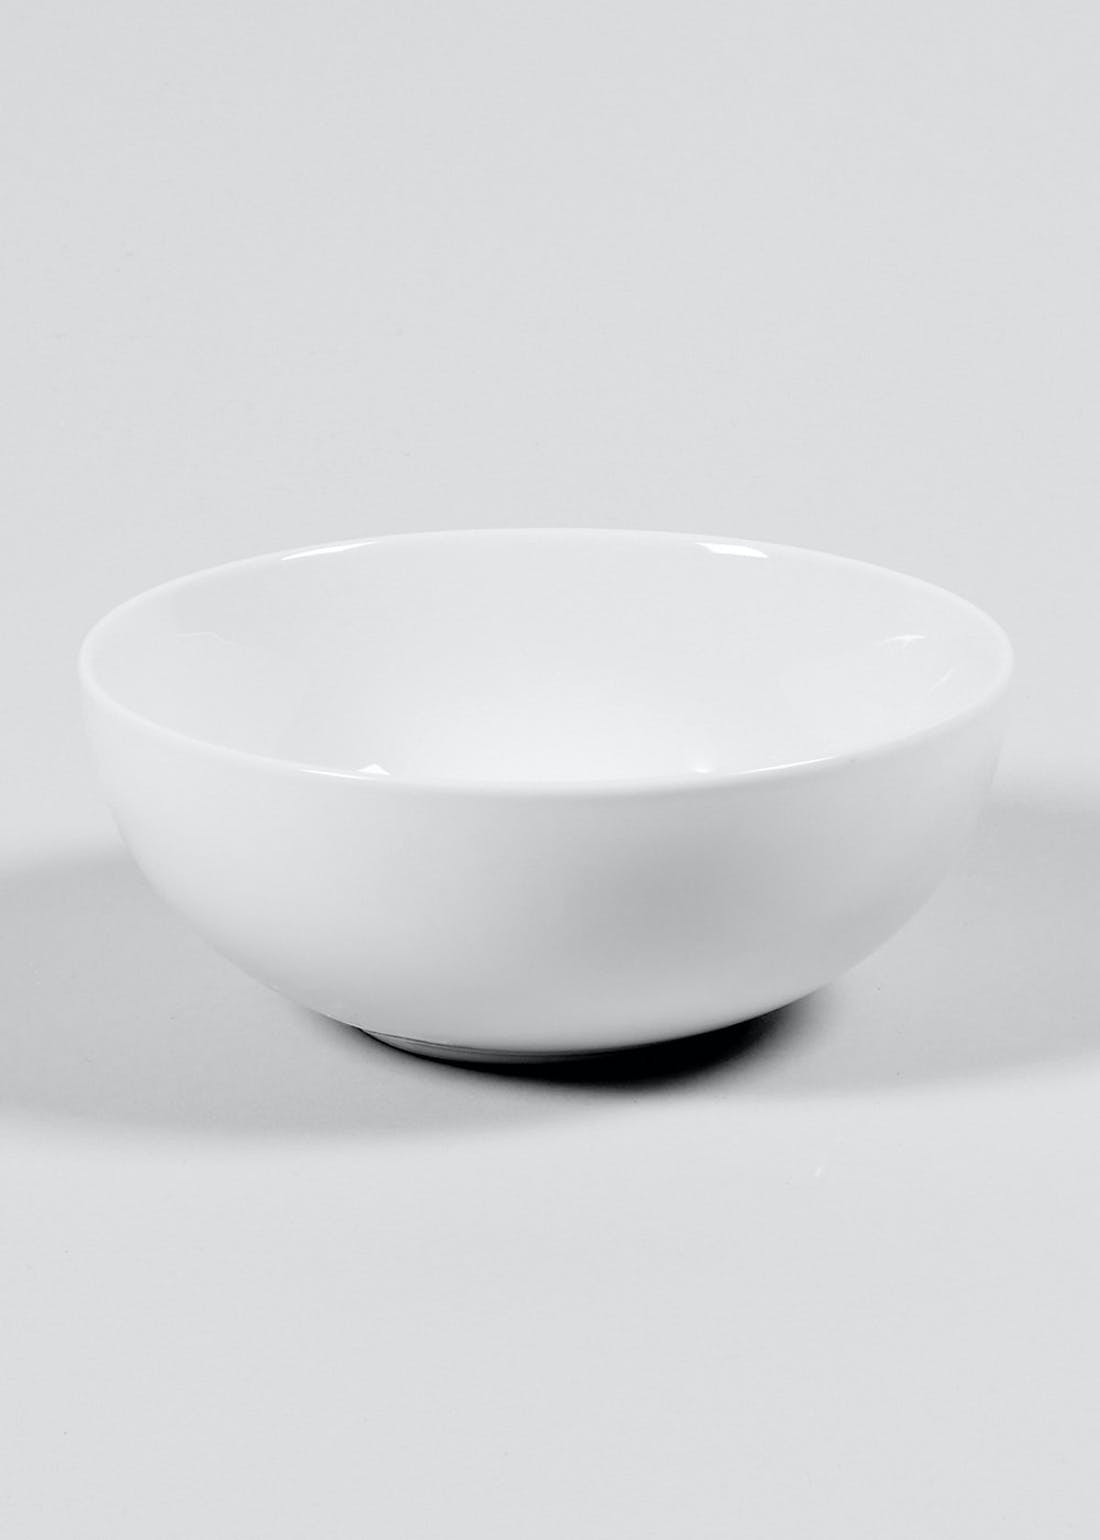 Porcelain Coupe Bowl (16cm x 7cm)